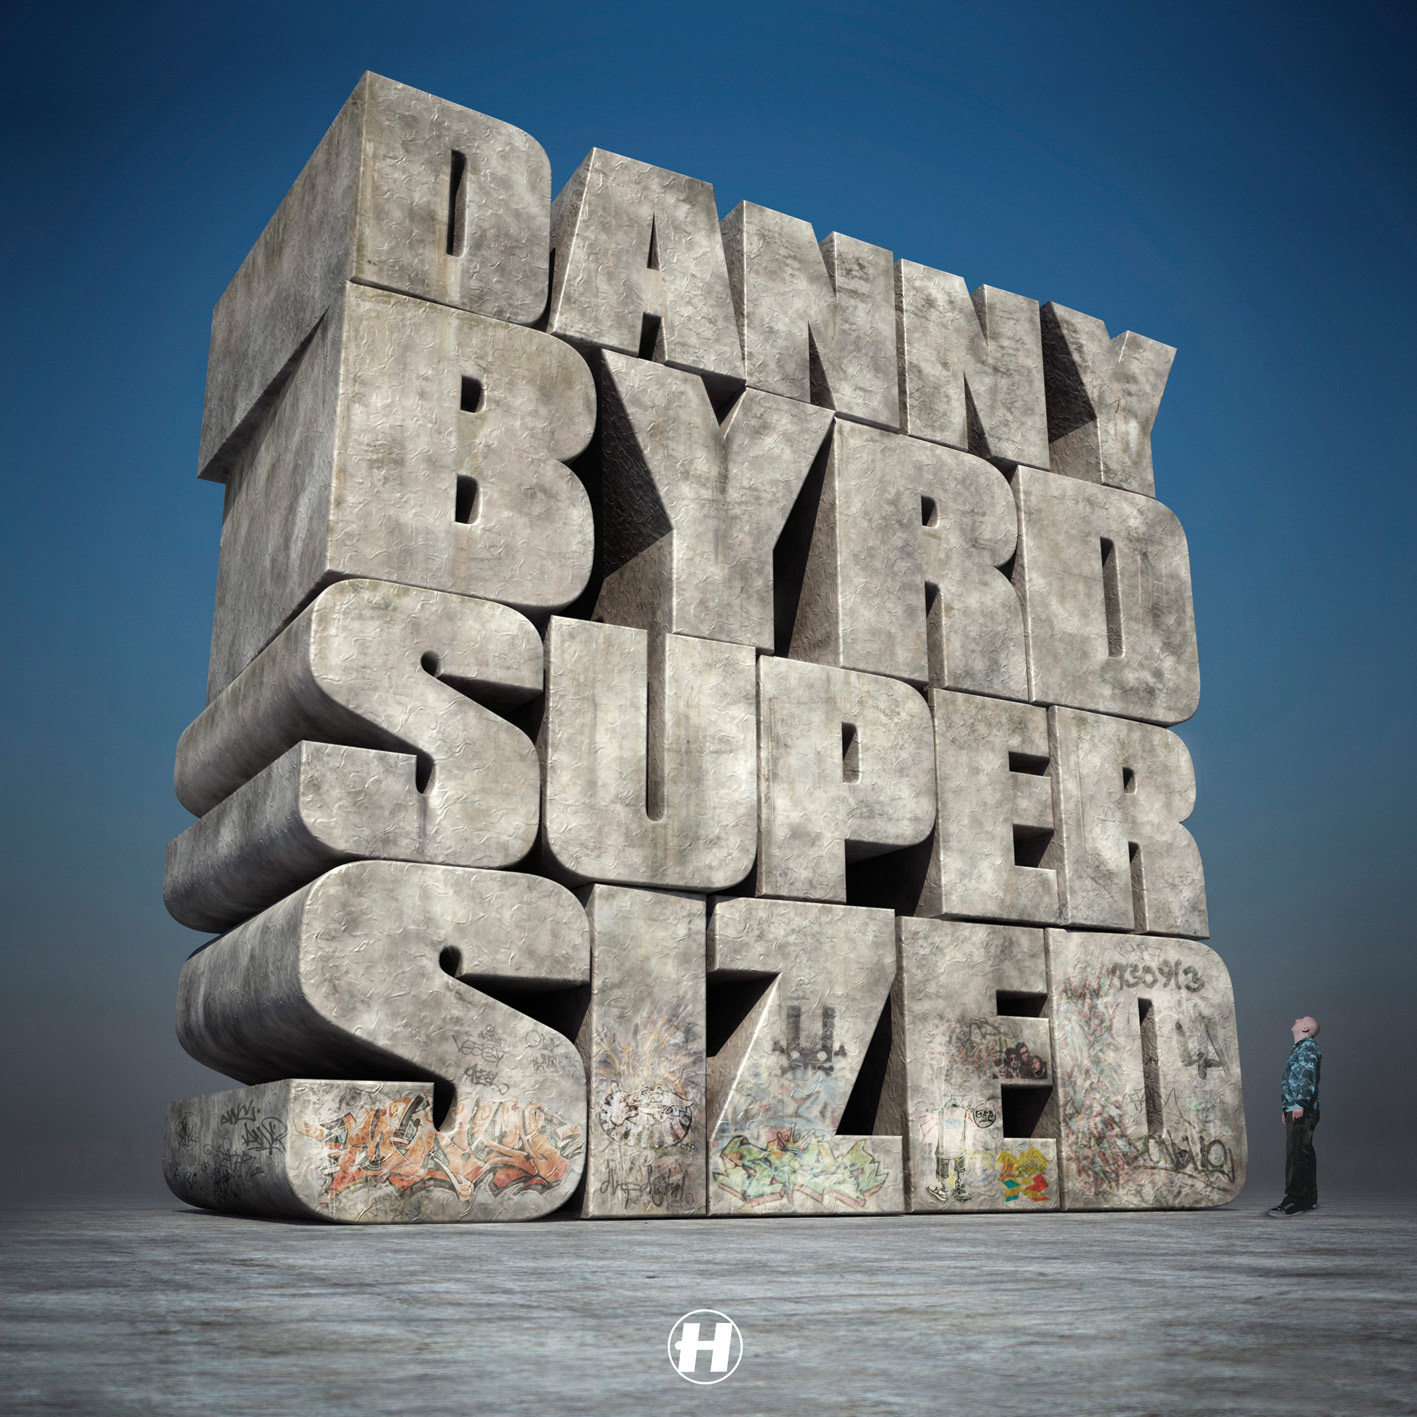 Danny Byrd — Supersized [Hospital Records][NHS139](2008)